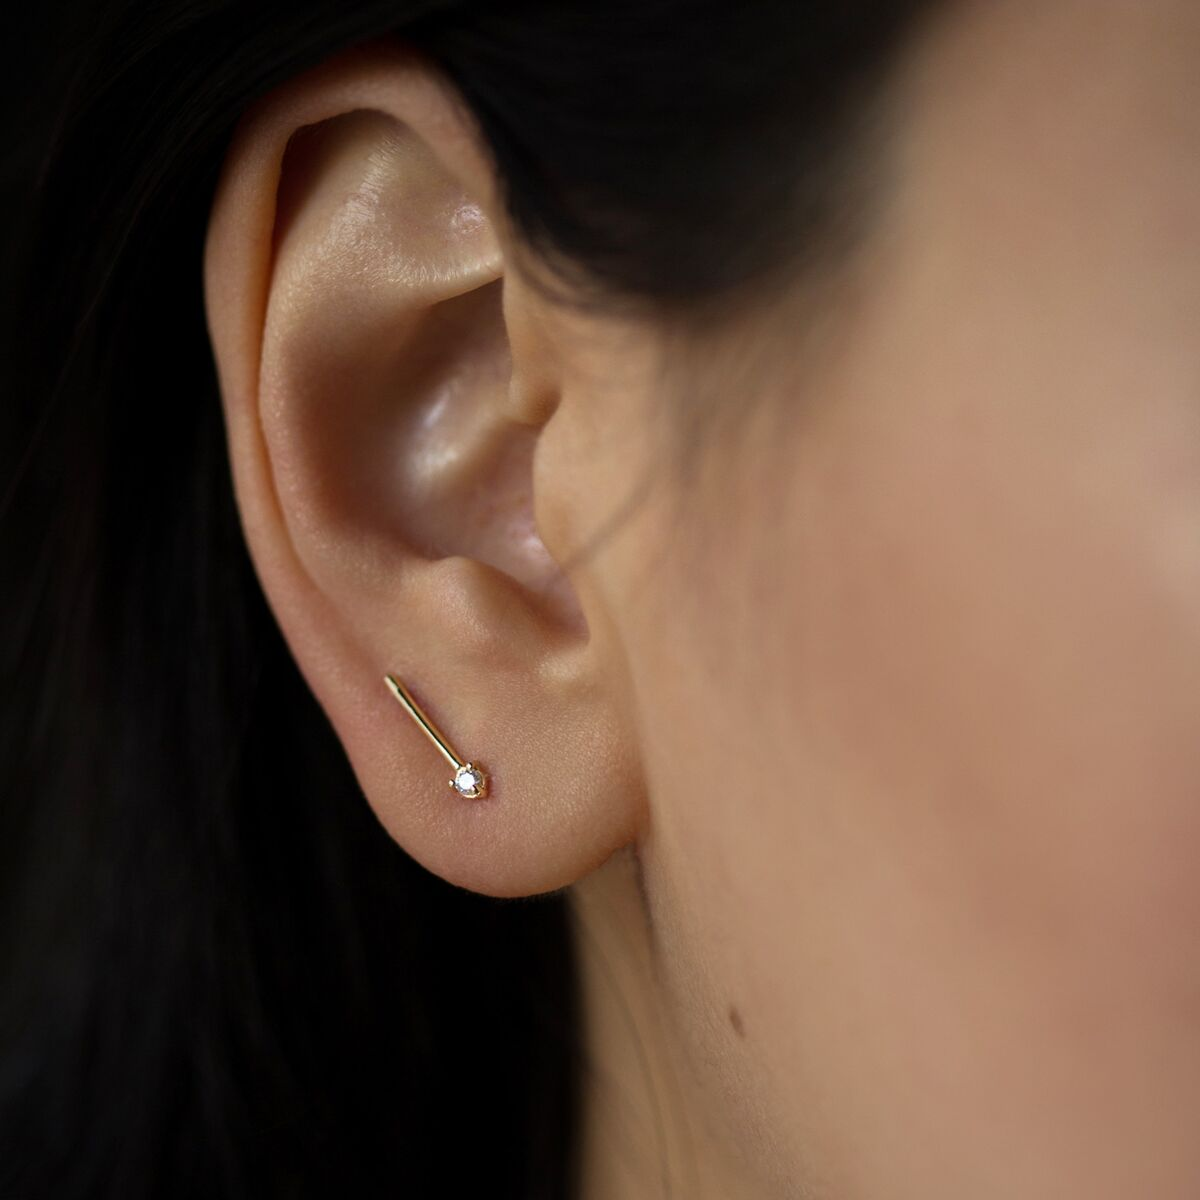 One-Step Bar Earring, Diamond (single) image